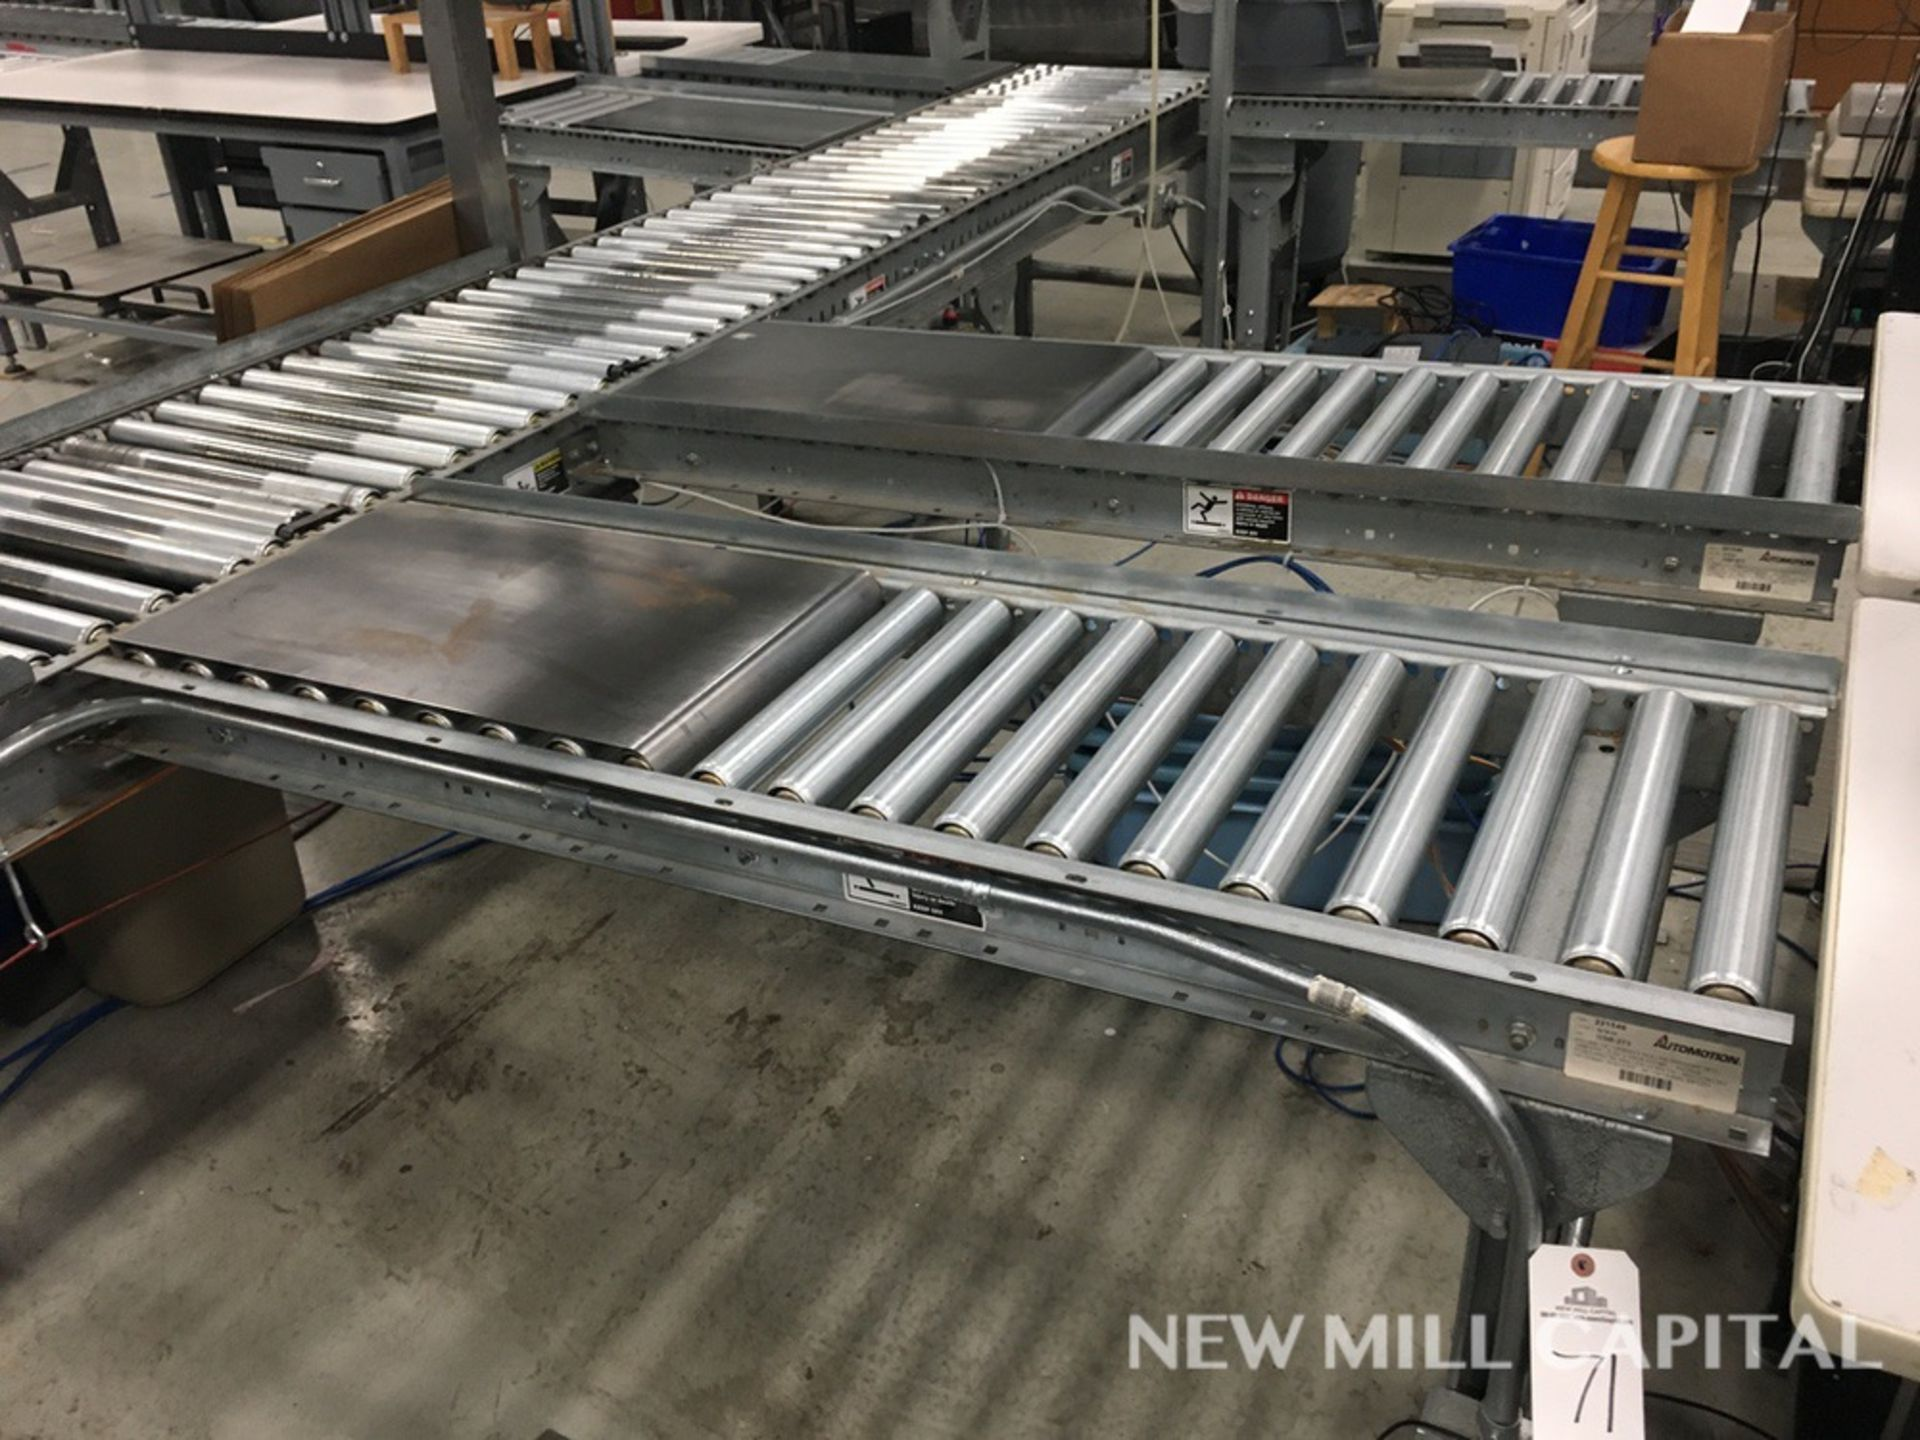 Lot 71 - (2) Roller Conveyors, Manual, Approx 5ft OA Length, 15in Rollers, 18in OA Width | Rig Fee: $150